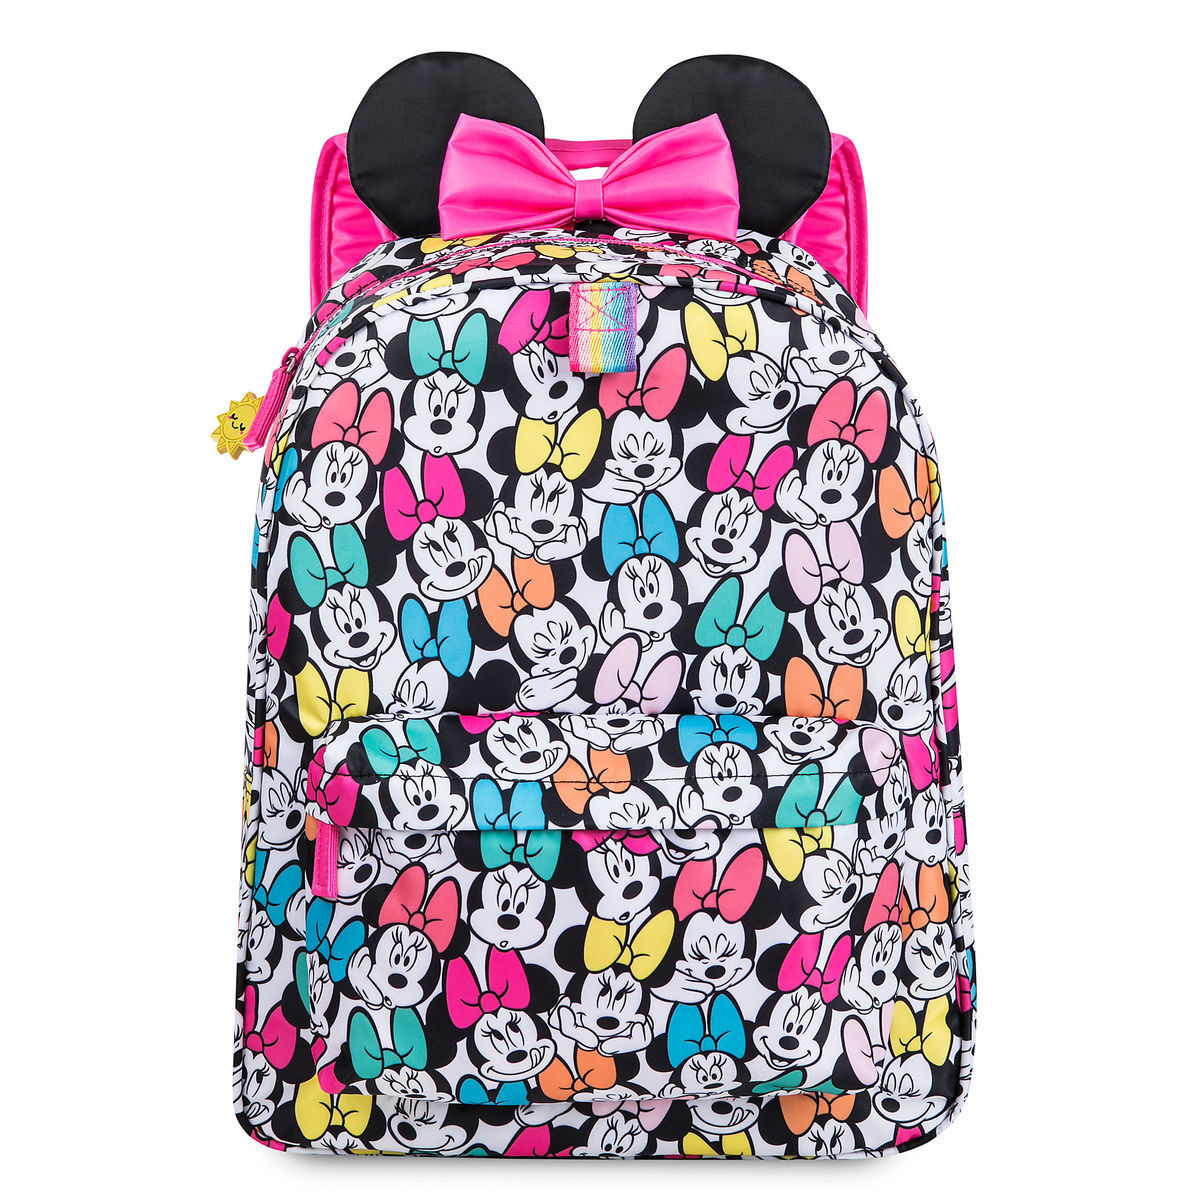 45a17a897a4 Product Image of Minnie Mouse Rainbow Backpack - Personalizable   1